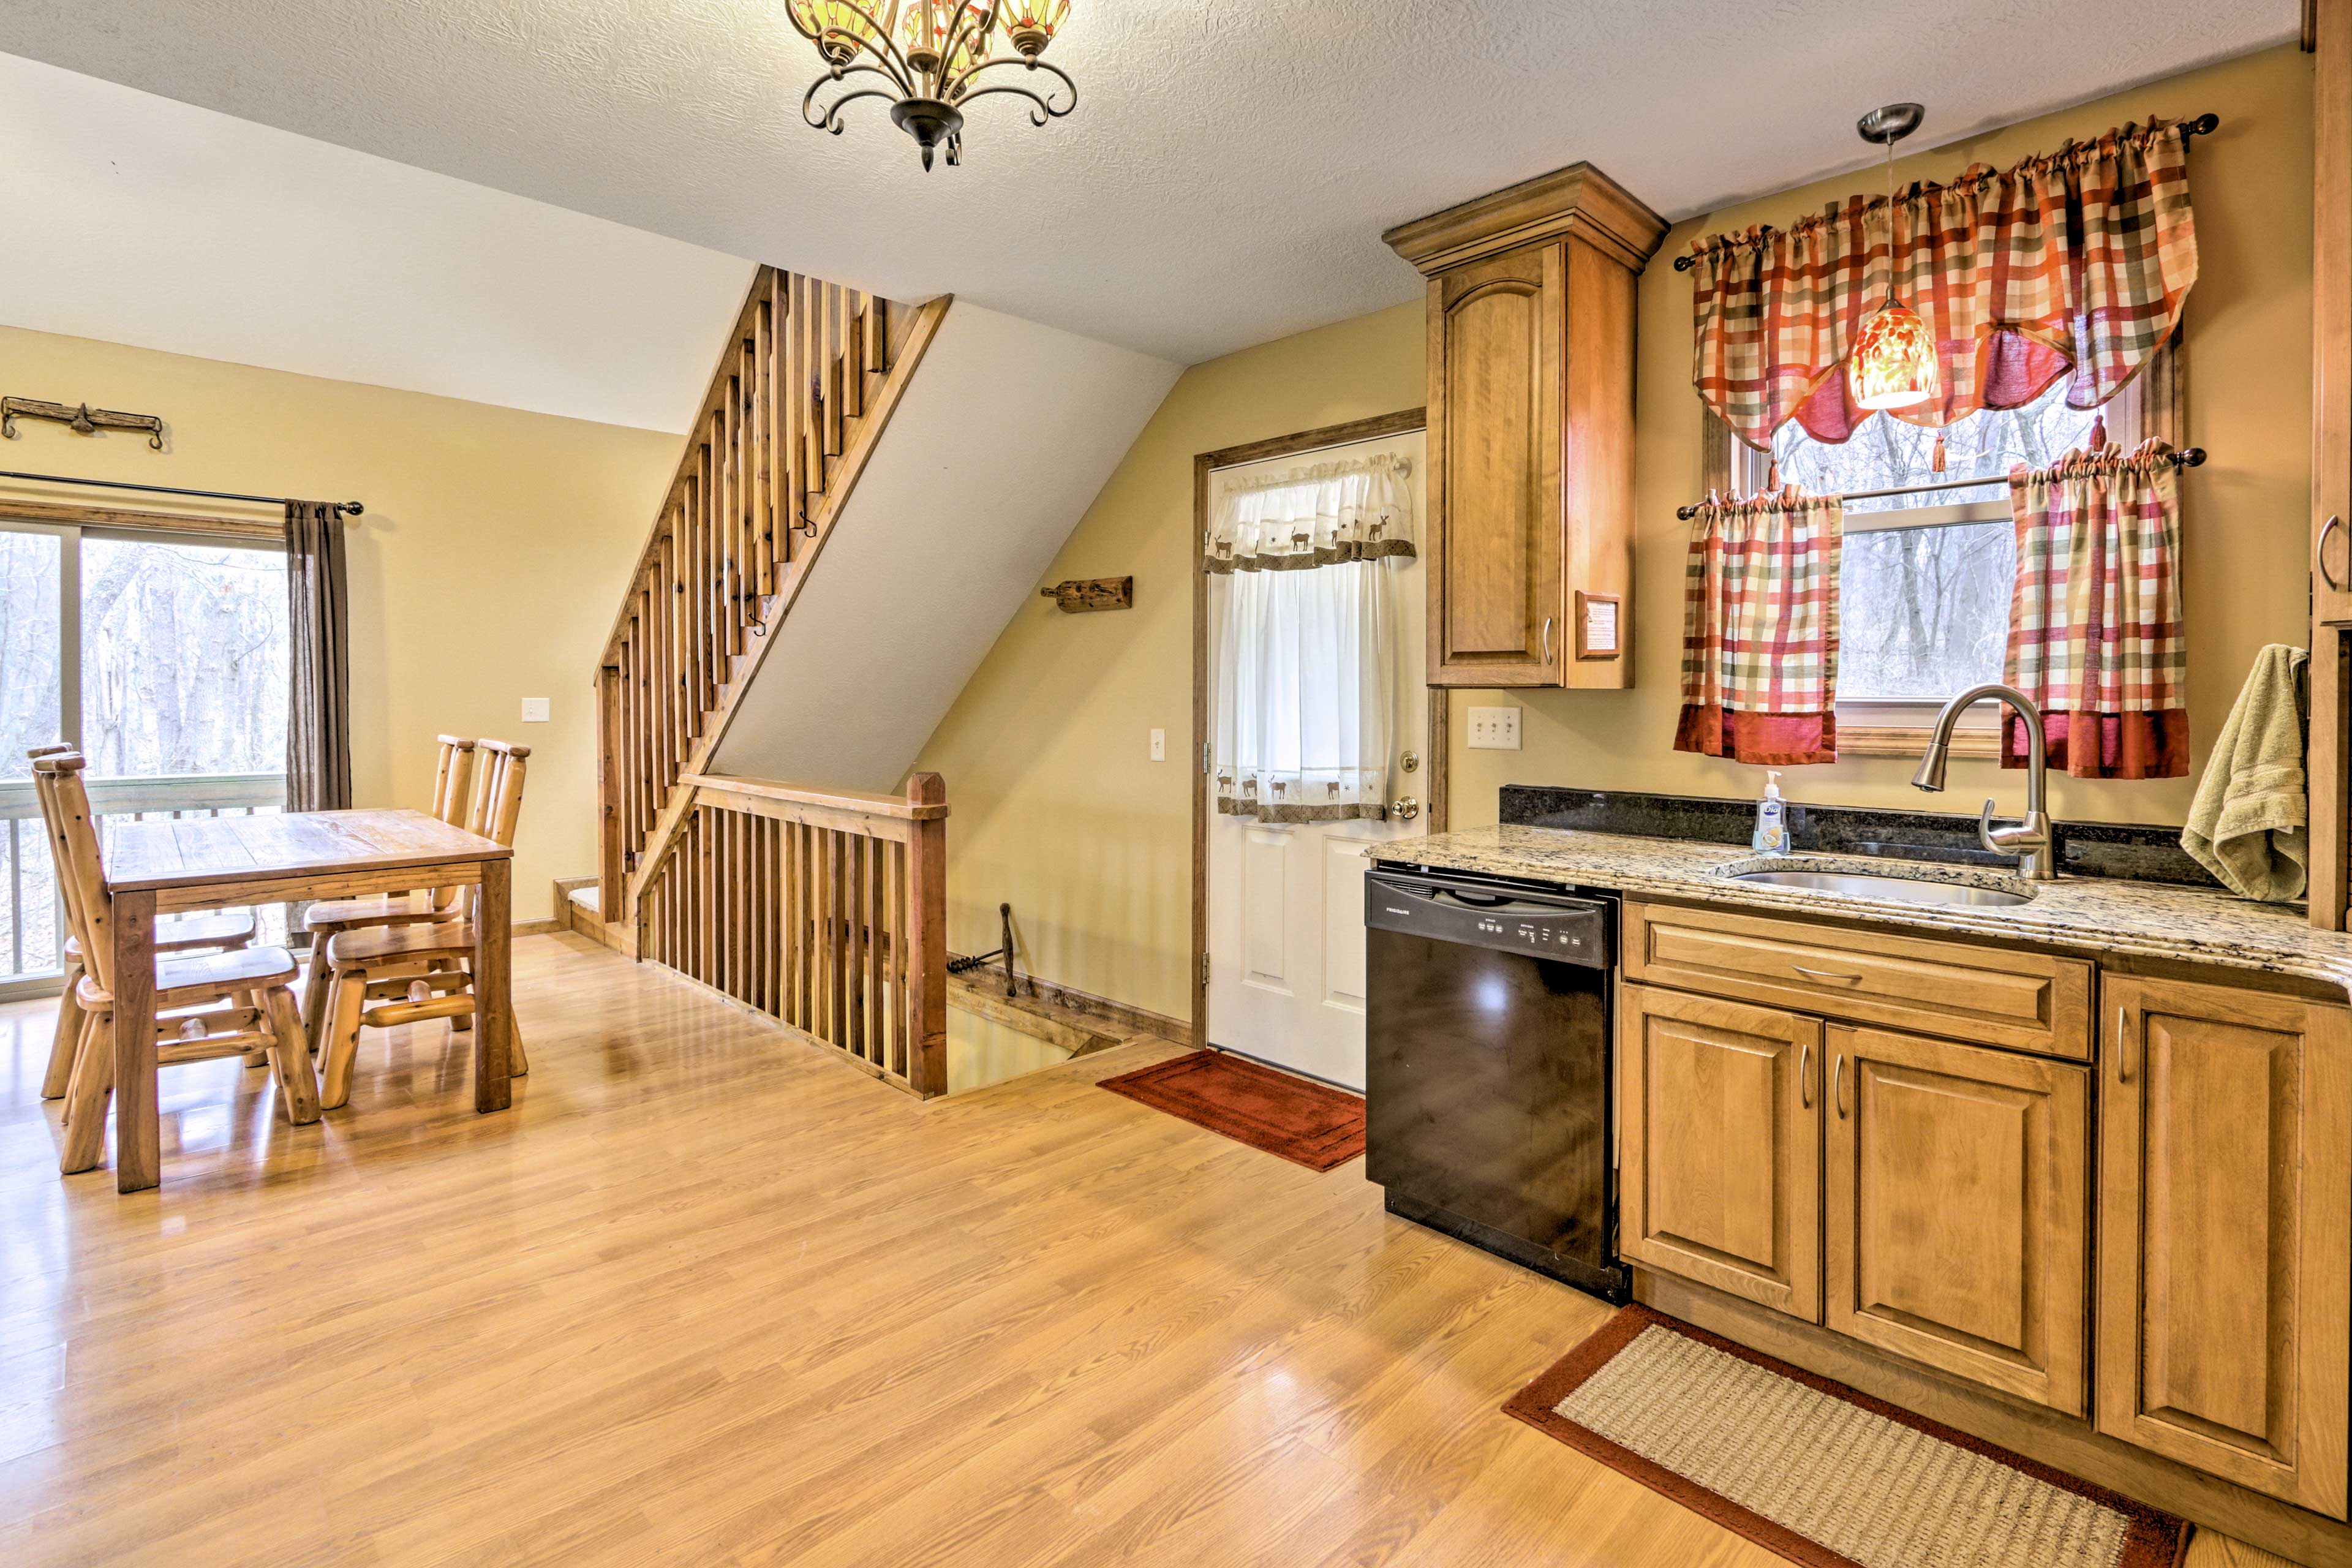 This updated kitchen features granite countertops.